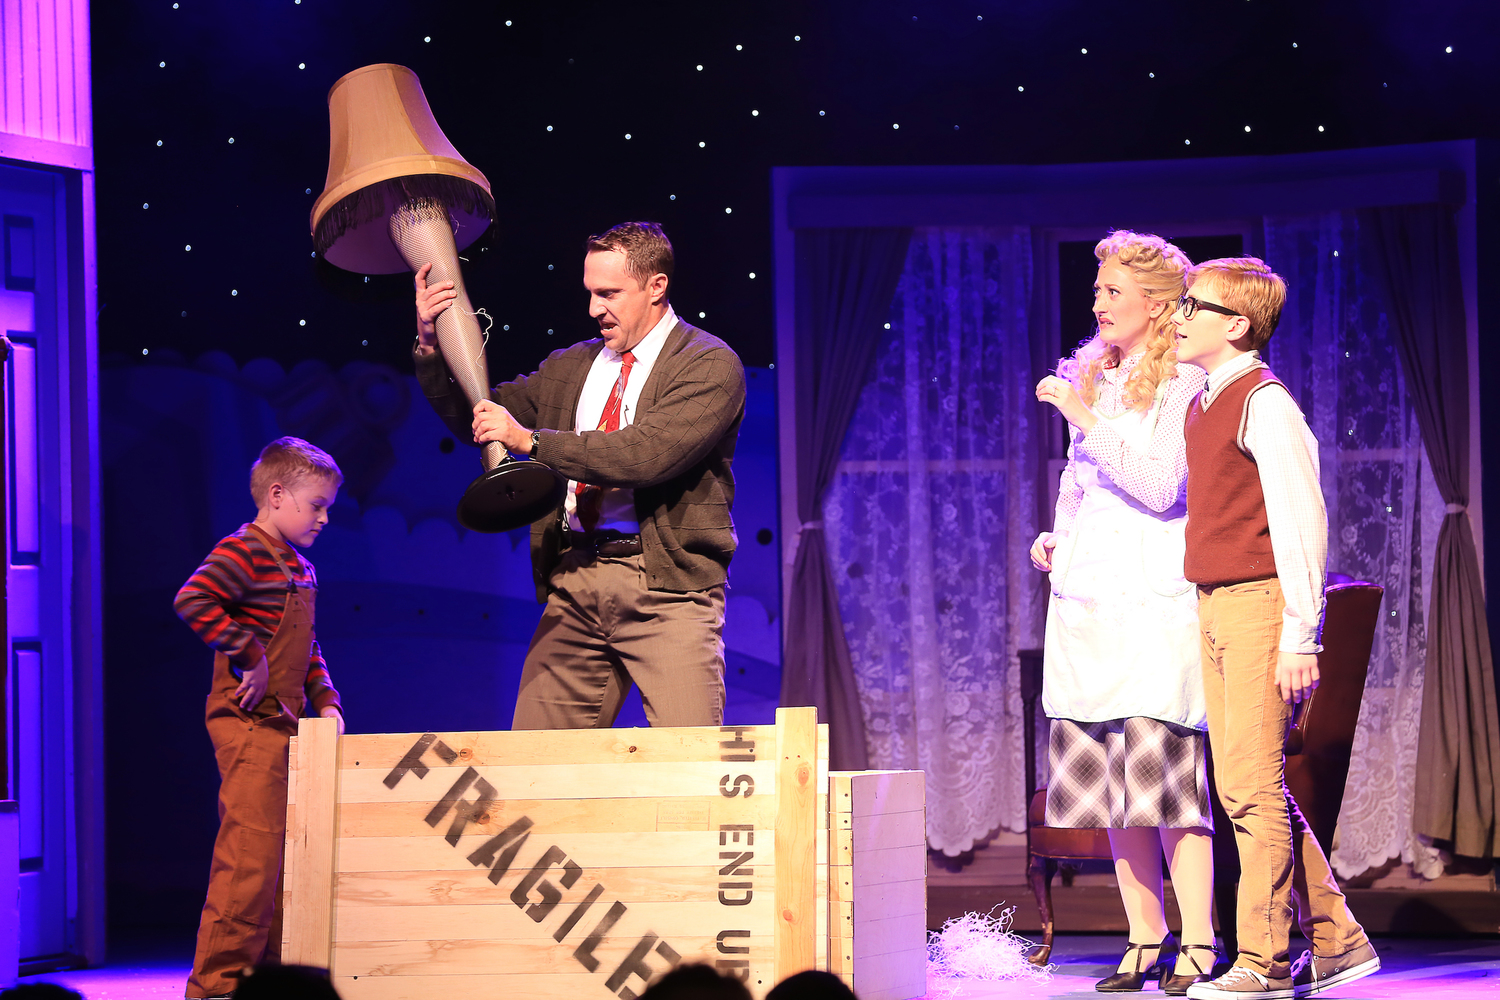 BWW Review: A CHRISTMAS STORY at Broadway Palm Brings Holiday Fun to All!